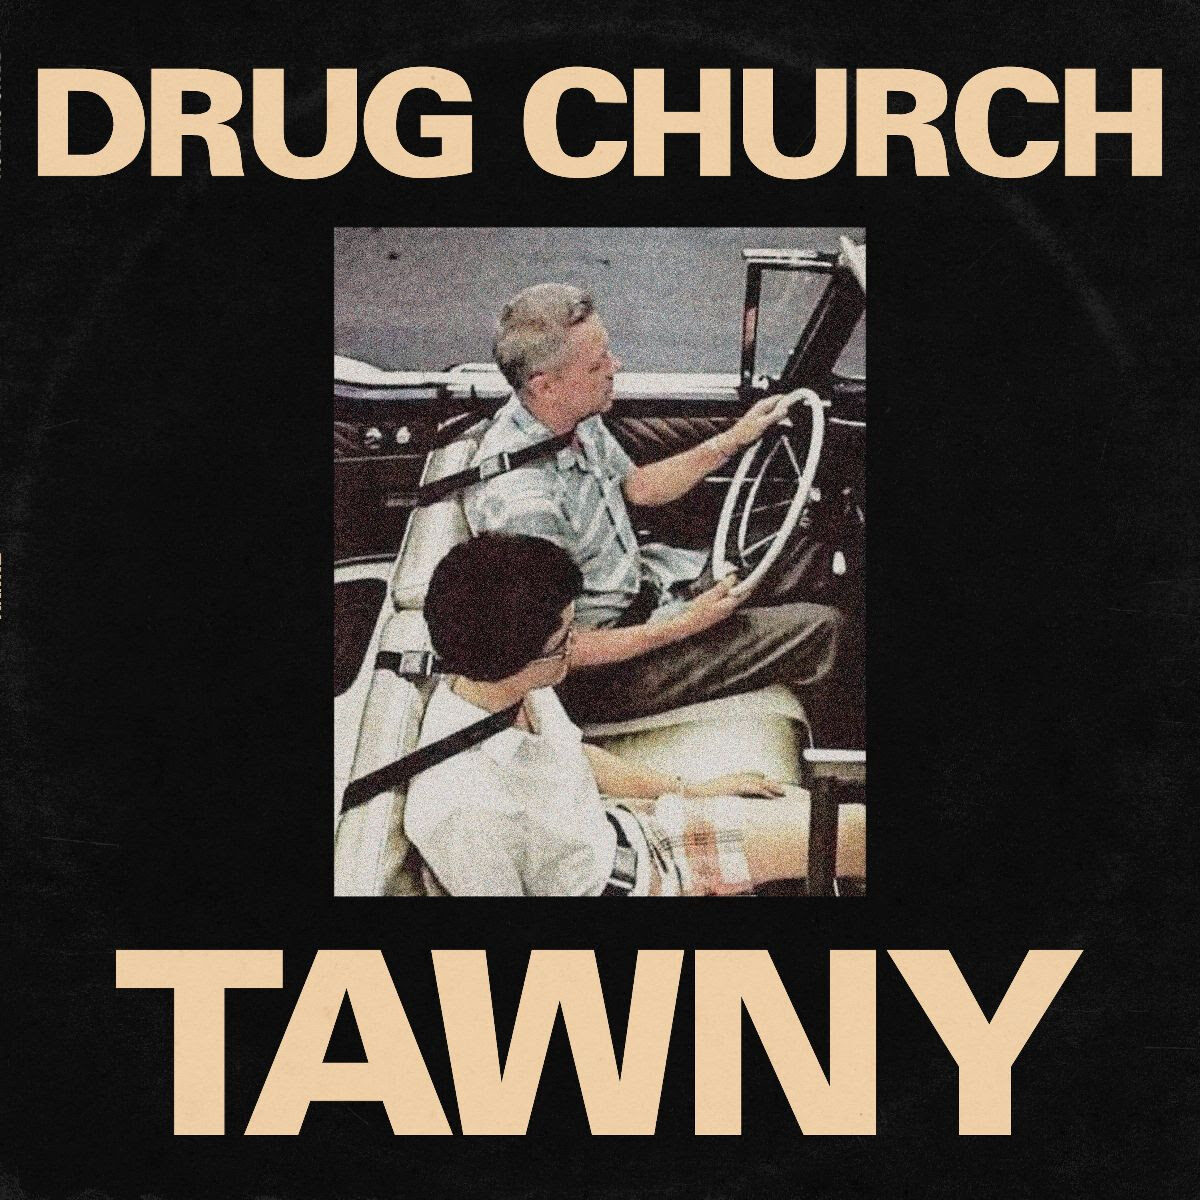 drug church tawny